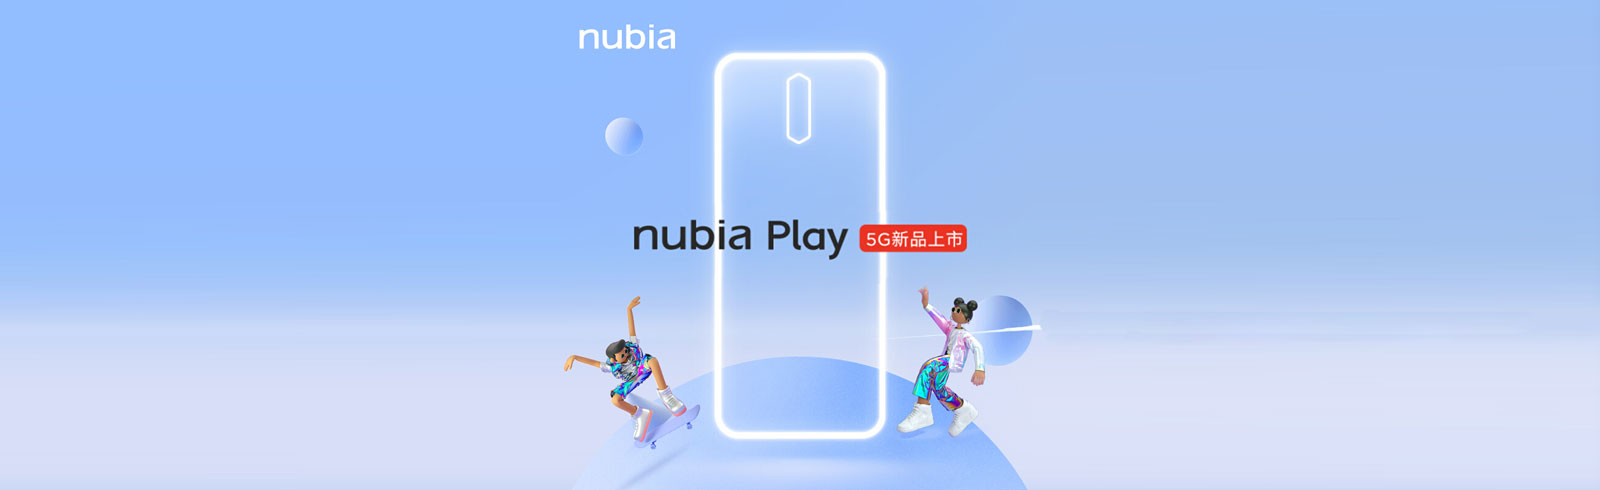 nubia Play with 5G, 48MP main camera and 5100 mAh battery will be announced on April 21